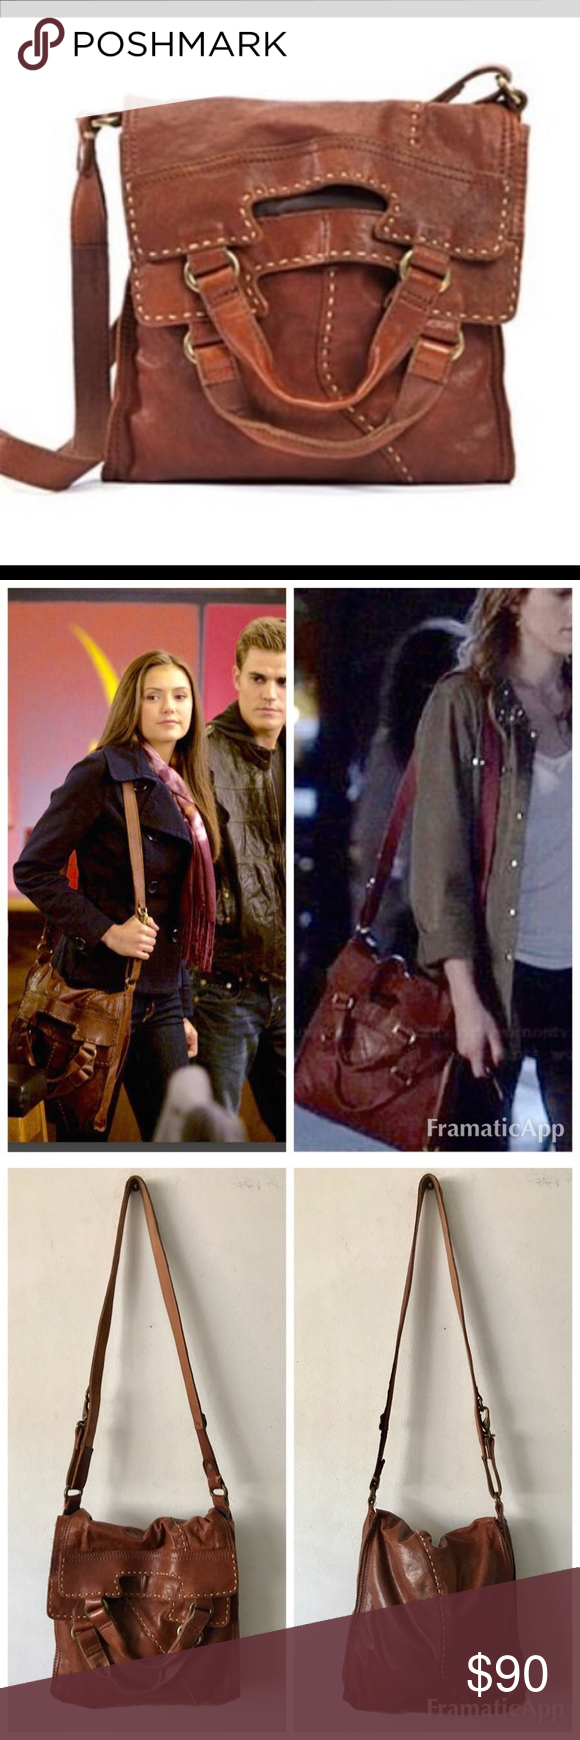 """Lucky Brand Abbey Road Foldover Bag $178 rare! Lucky Brand Abbey Road Foldover Bag $178 Celebrity Fave! As seen in Vampire Diaries & on other celebrities. Great condition- interior is clean with no stains. Exterior Italian Leather is super soft, backside has slight area of discoloration- see photo. Not very noticeable.   * Leather  * Plainweave lining  * flap closure  * 12"""" shoulder drop  * 12"""" high  * 12"""" wide  * Handles have a drop of approximately 6"""" Lucky Brand Bags Crossbody Bags"""